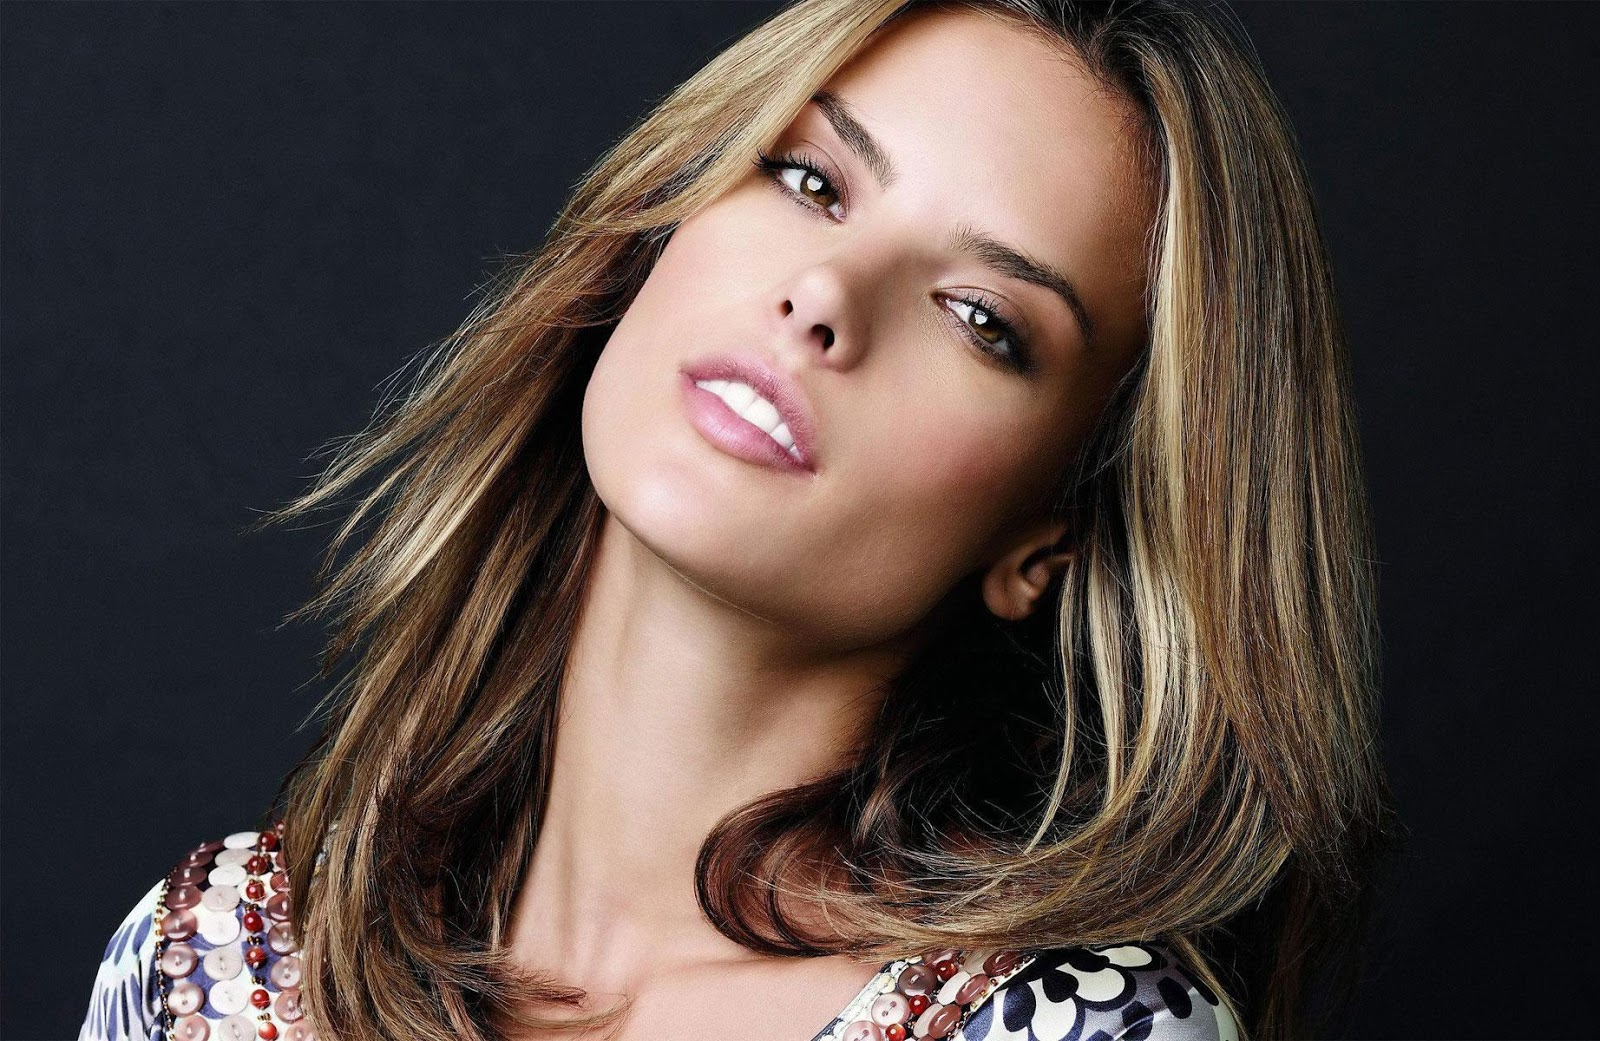 alessandra ambrosio wallpapers - photo #35